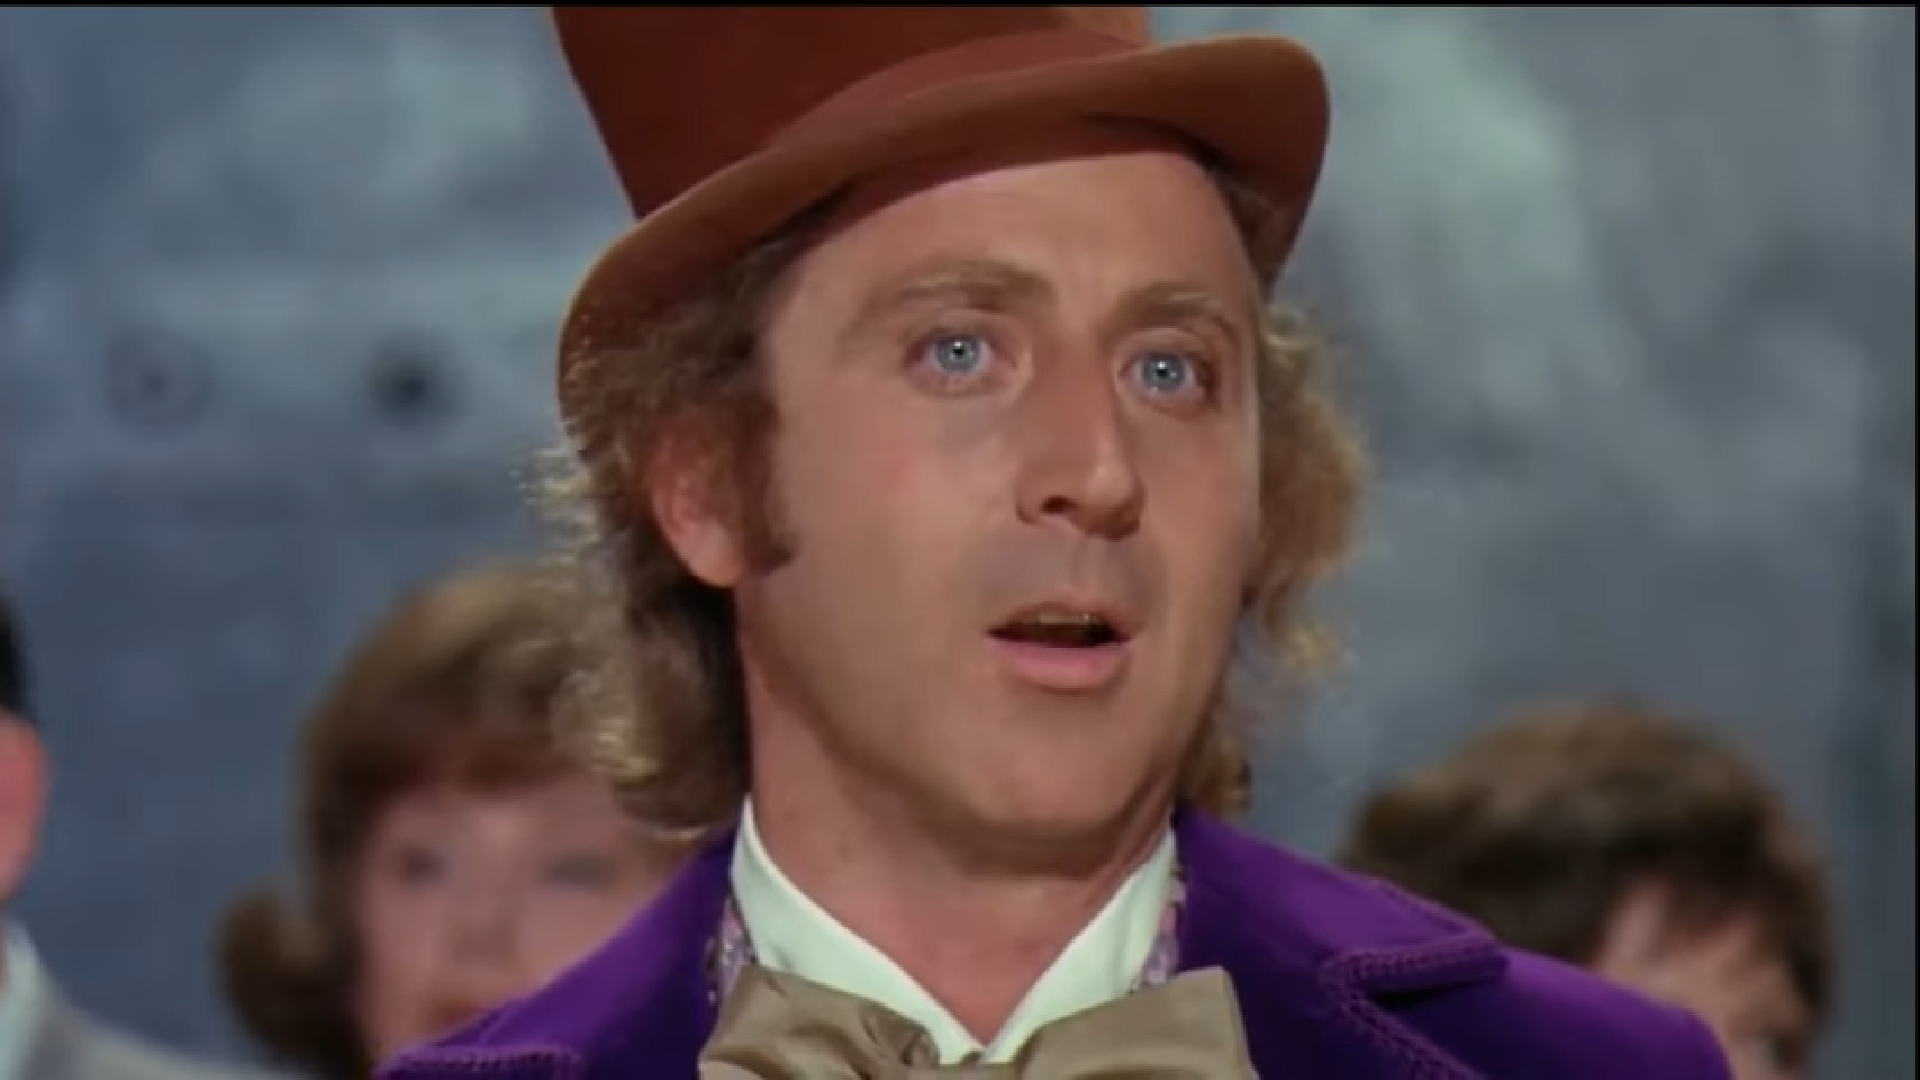 Young Willy Wonka could be Ryan Gosling, Ezra Miller, or Donald Glover